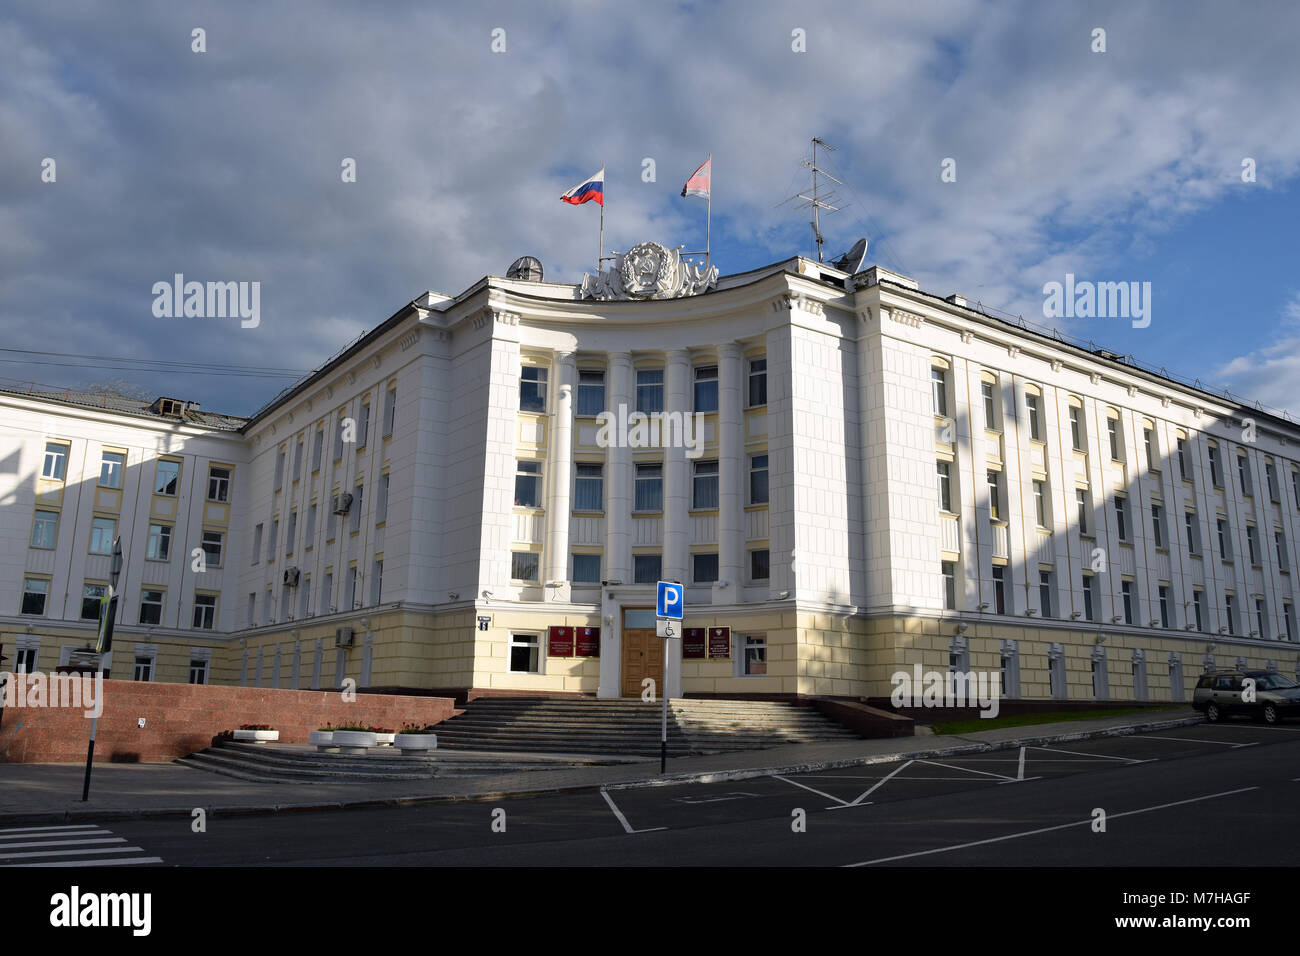 Soviet architecture building in Magadan, the capital of the Kolyma region. Stock Photo